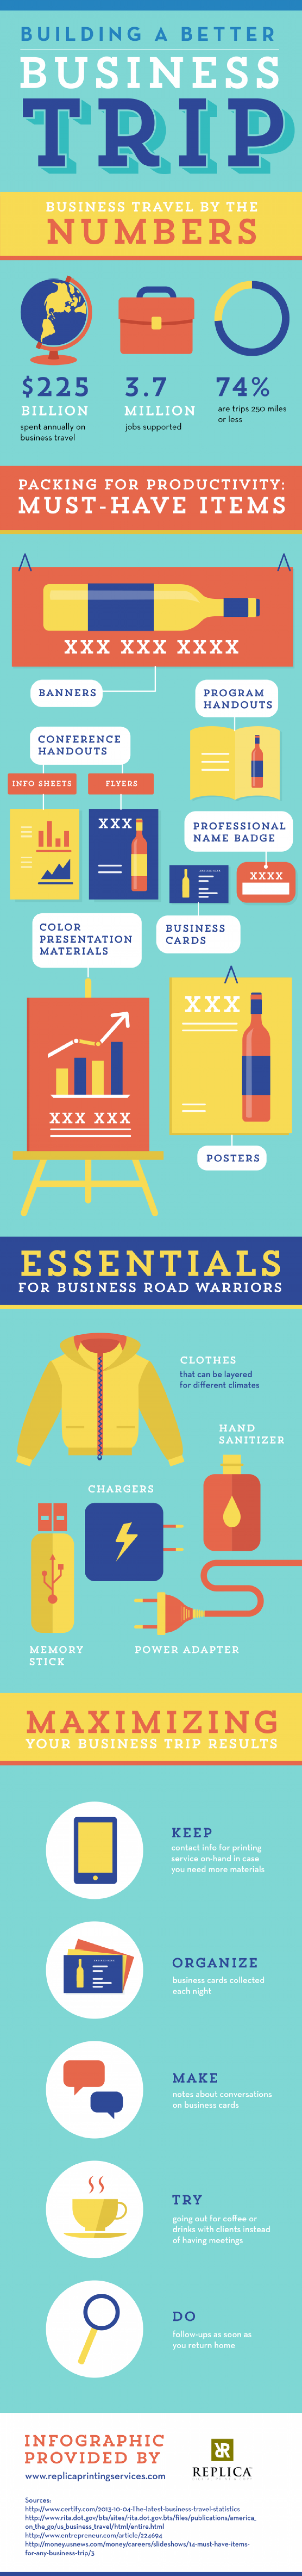 Building a Better Business Trip  Infographic